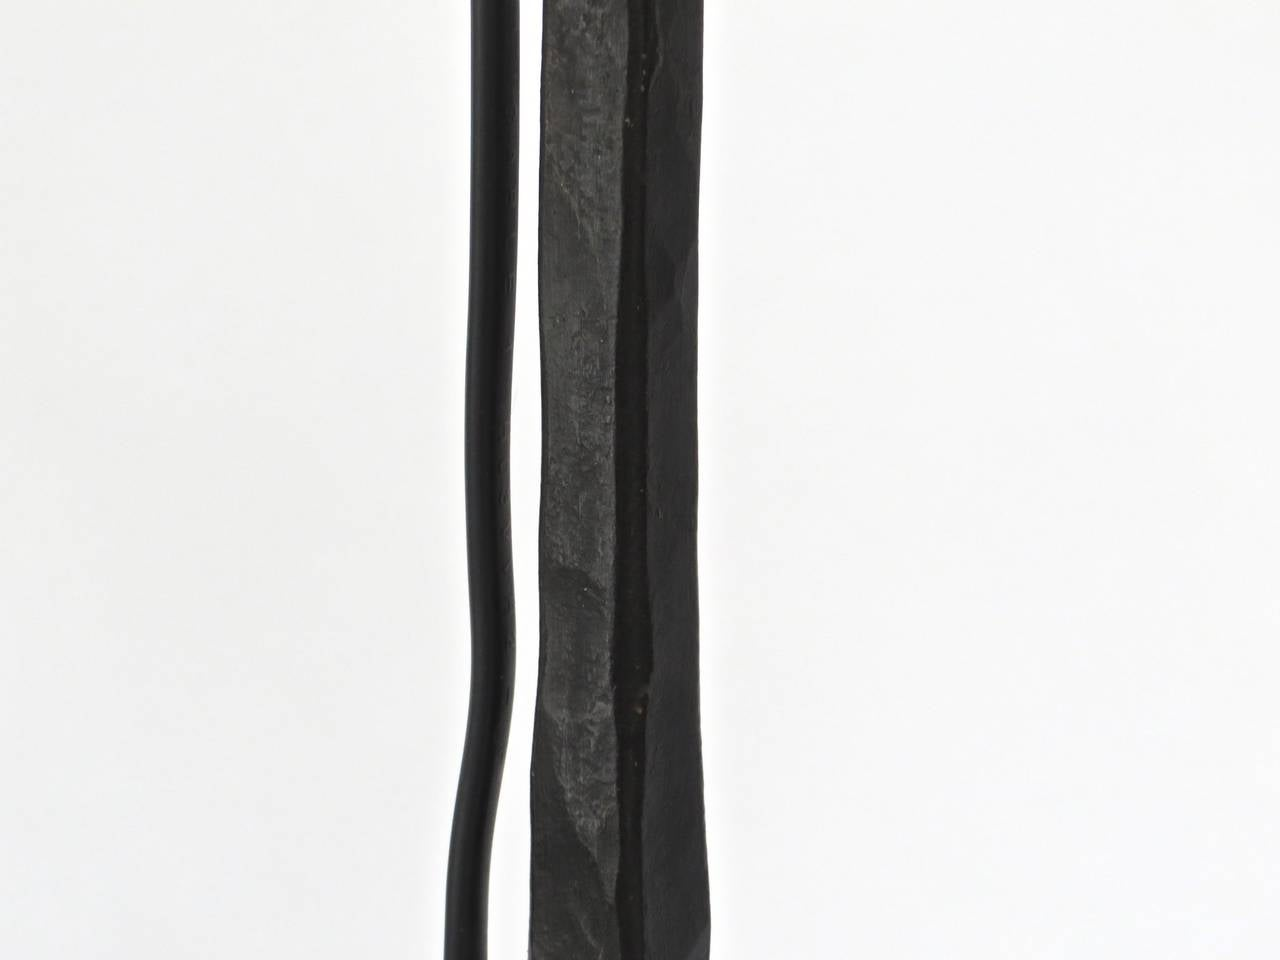 Minimalist Style Hand Wrought Iron French Floor Lamp With